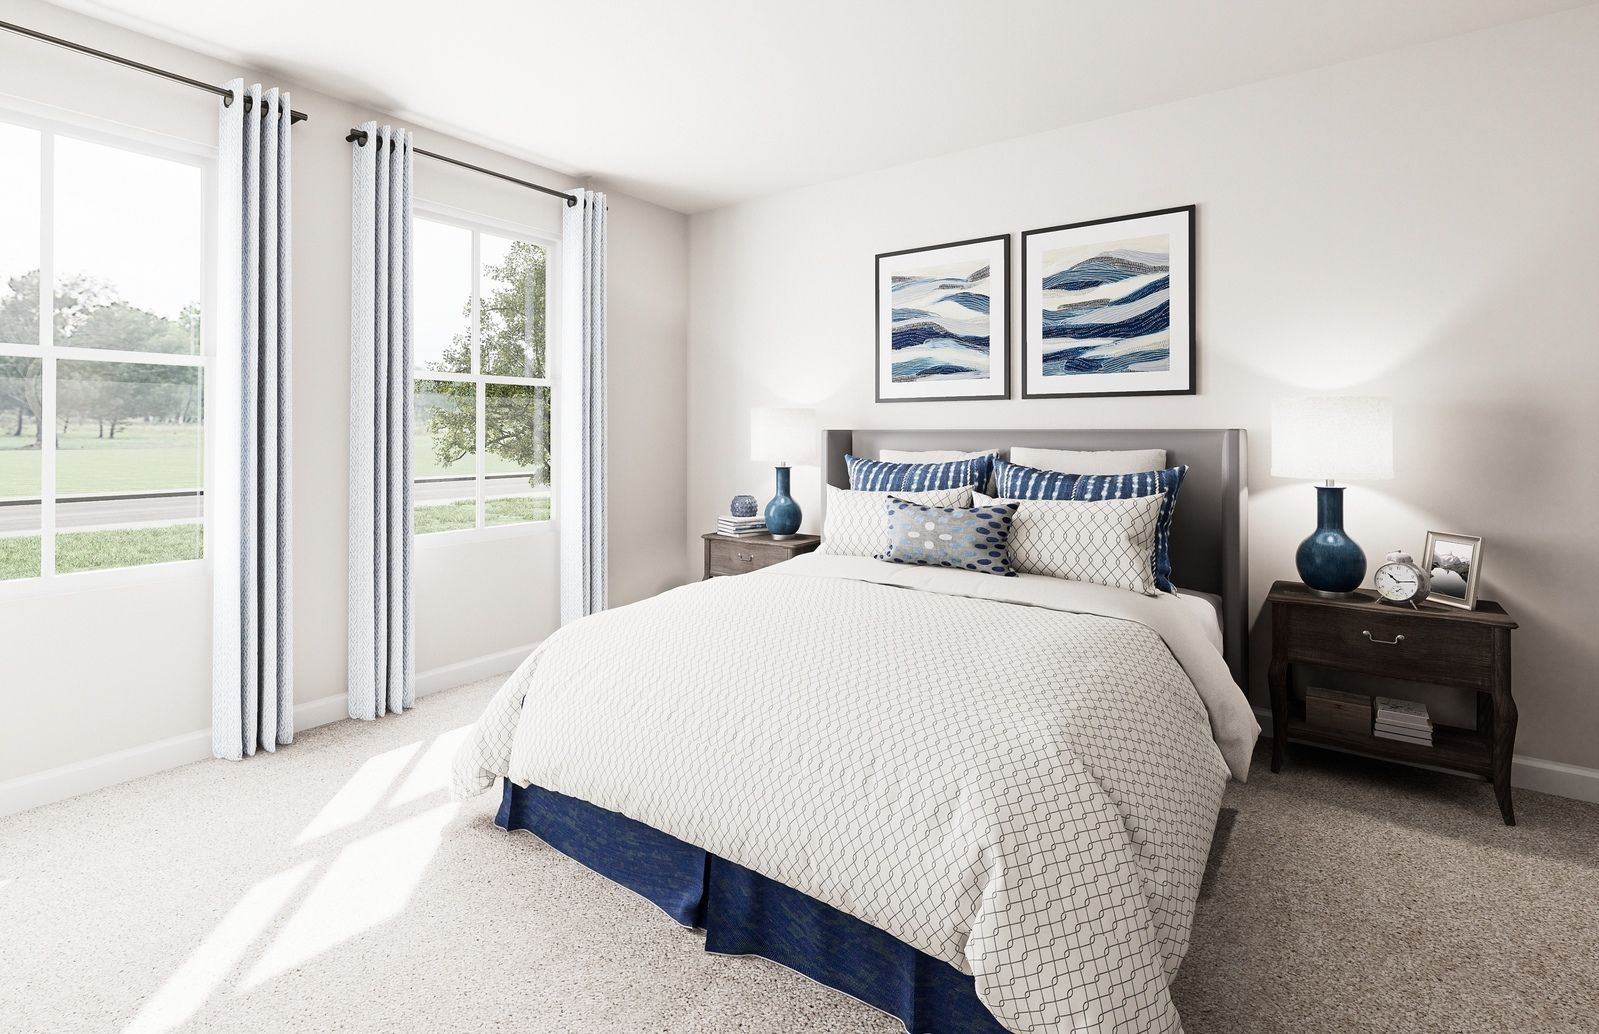 Bedroom featured in the Eden Cay w/ Basement By Ryan Homes in Charlottesville, VA